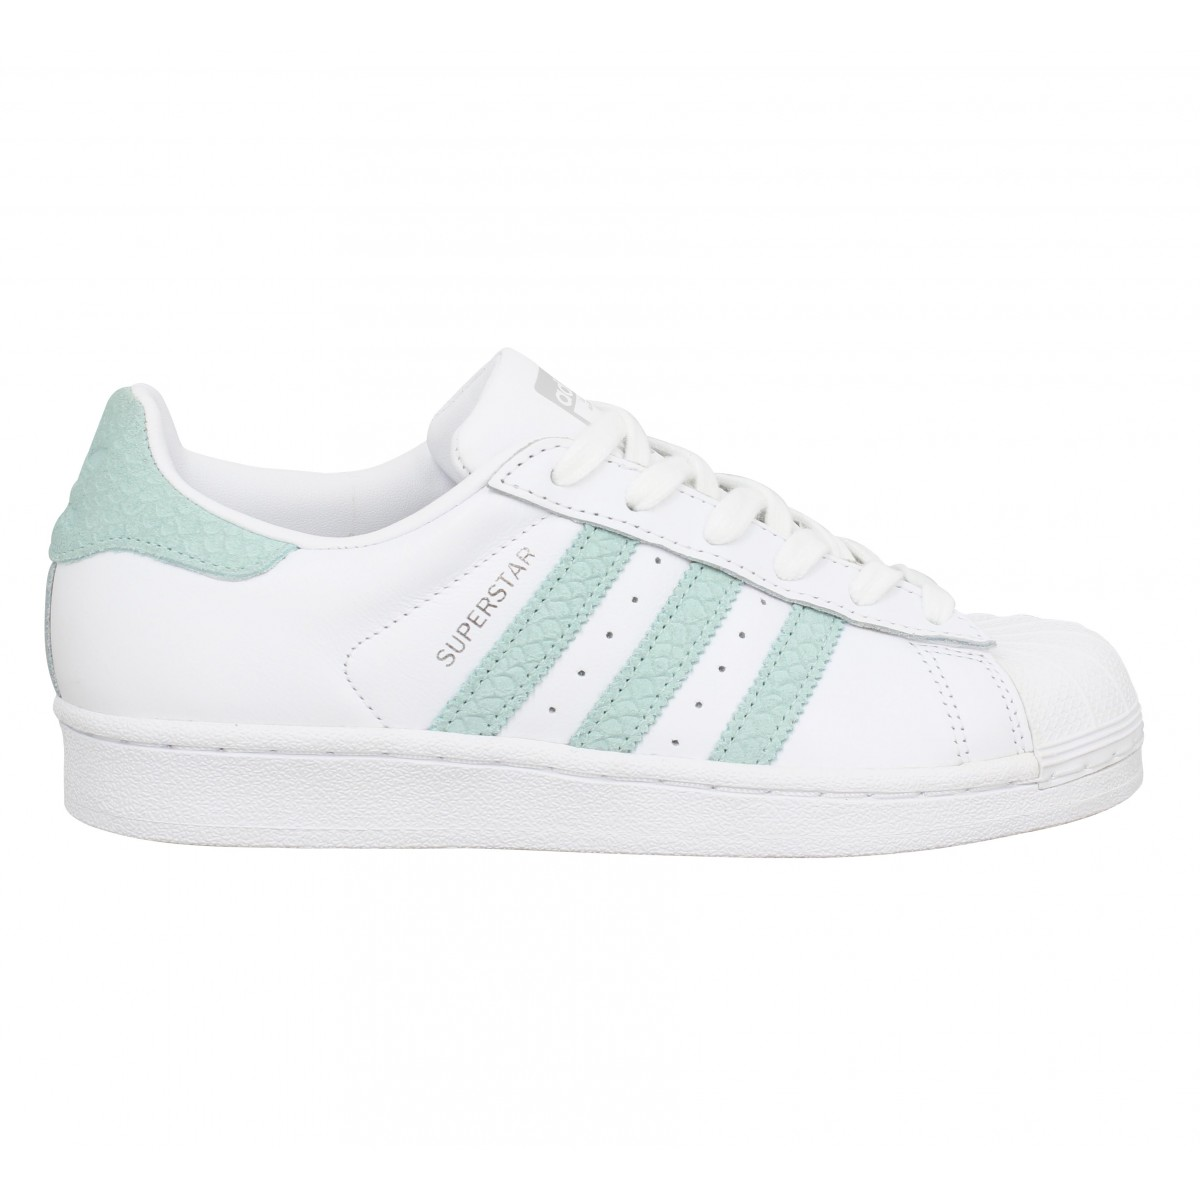 Baskets Adidas Superstar femme. Référence : 008143-Blanc Gold rose